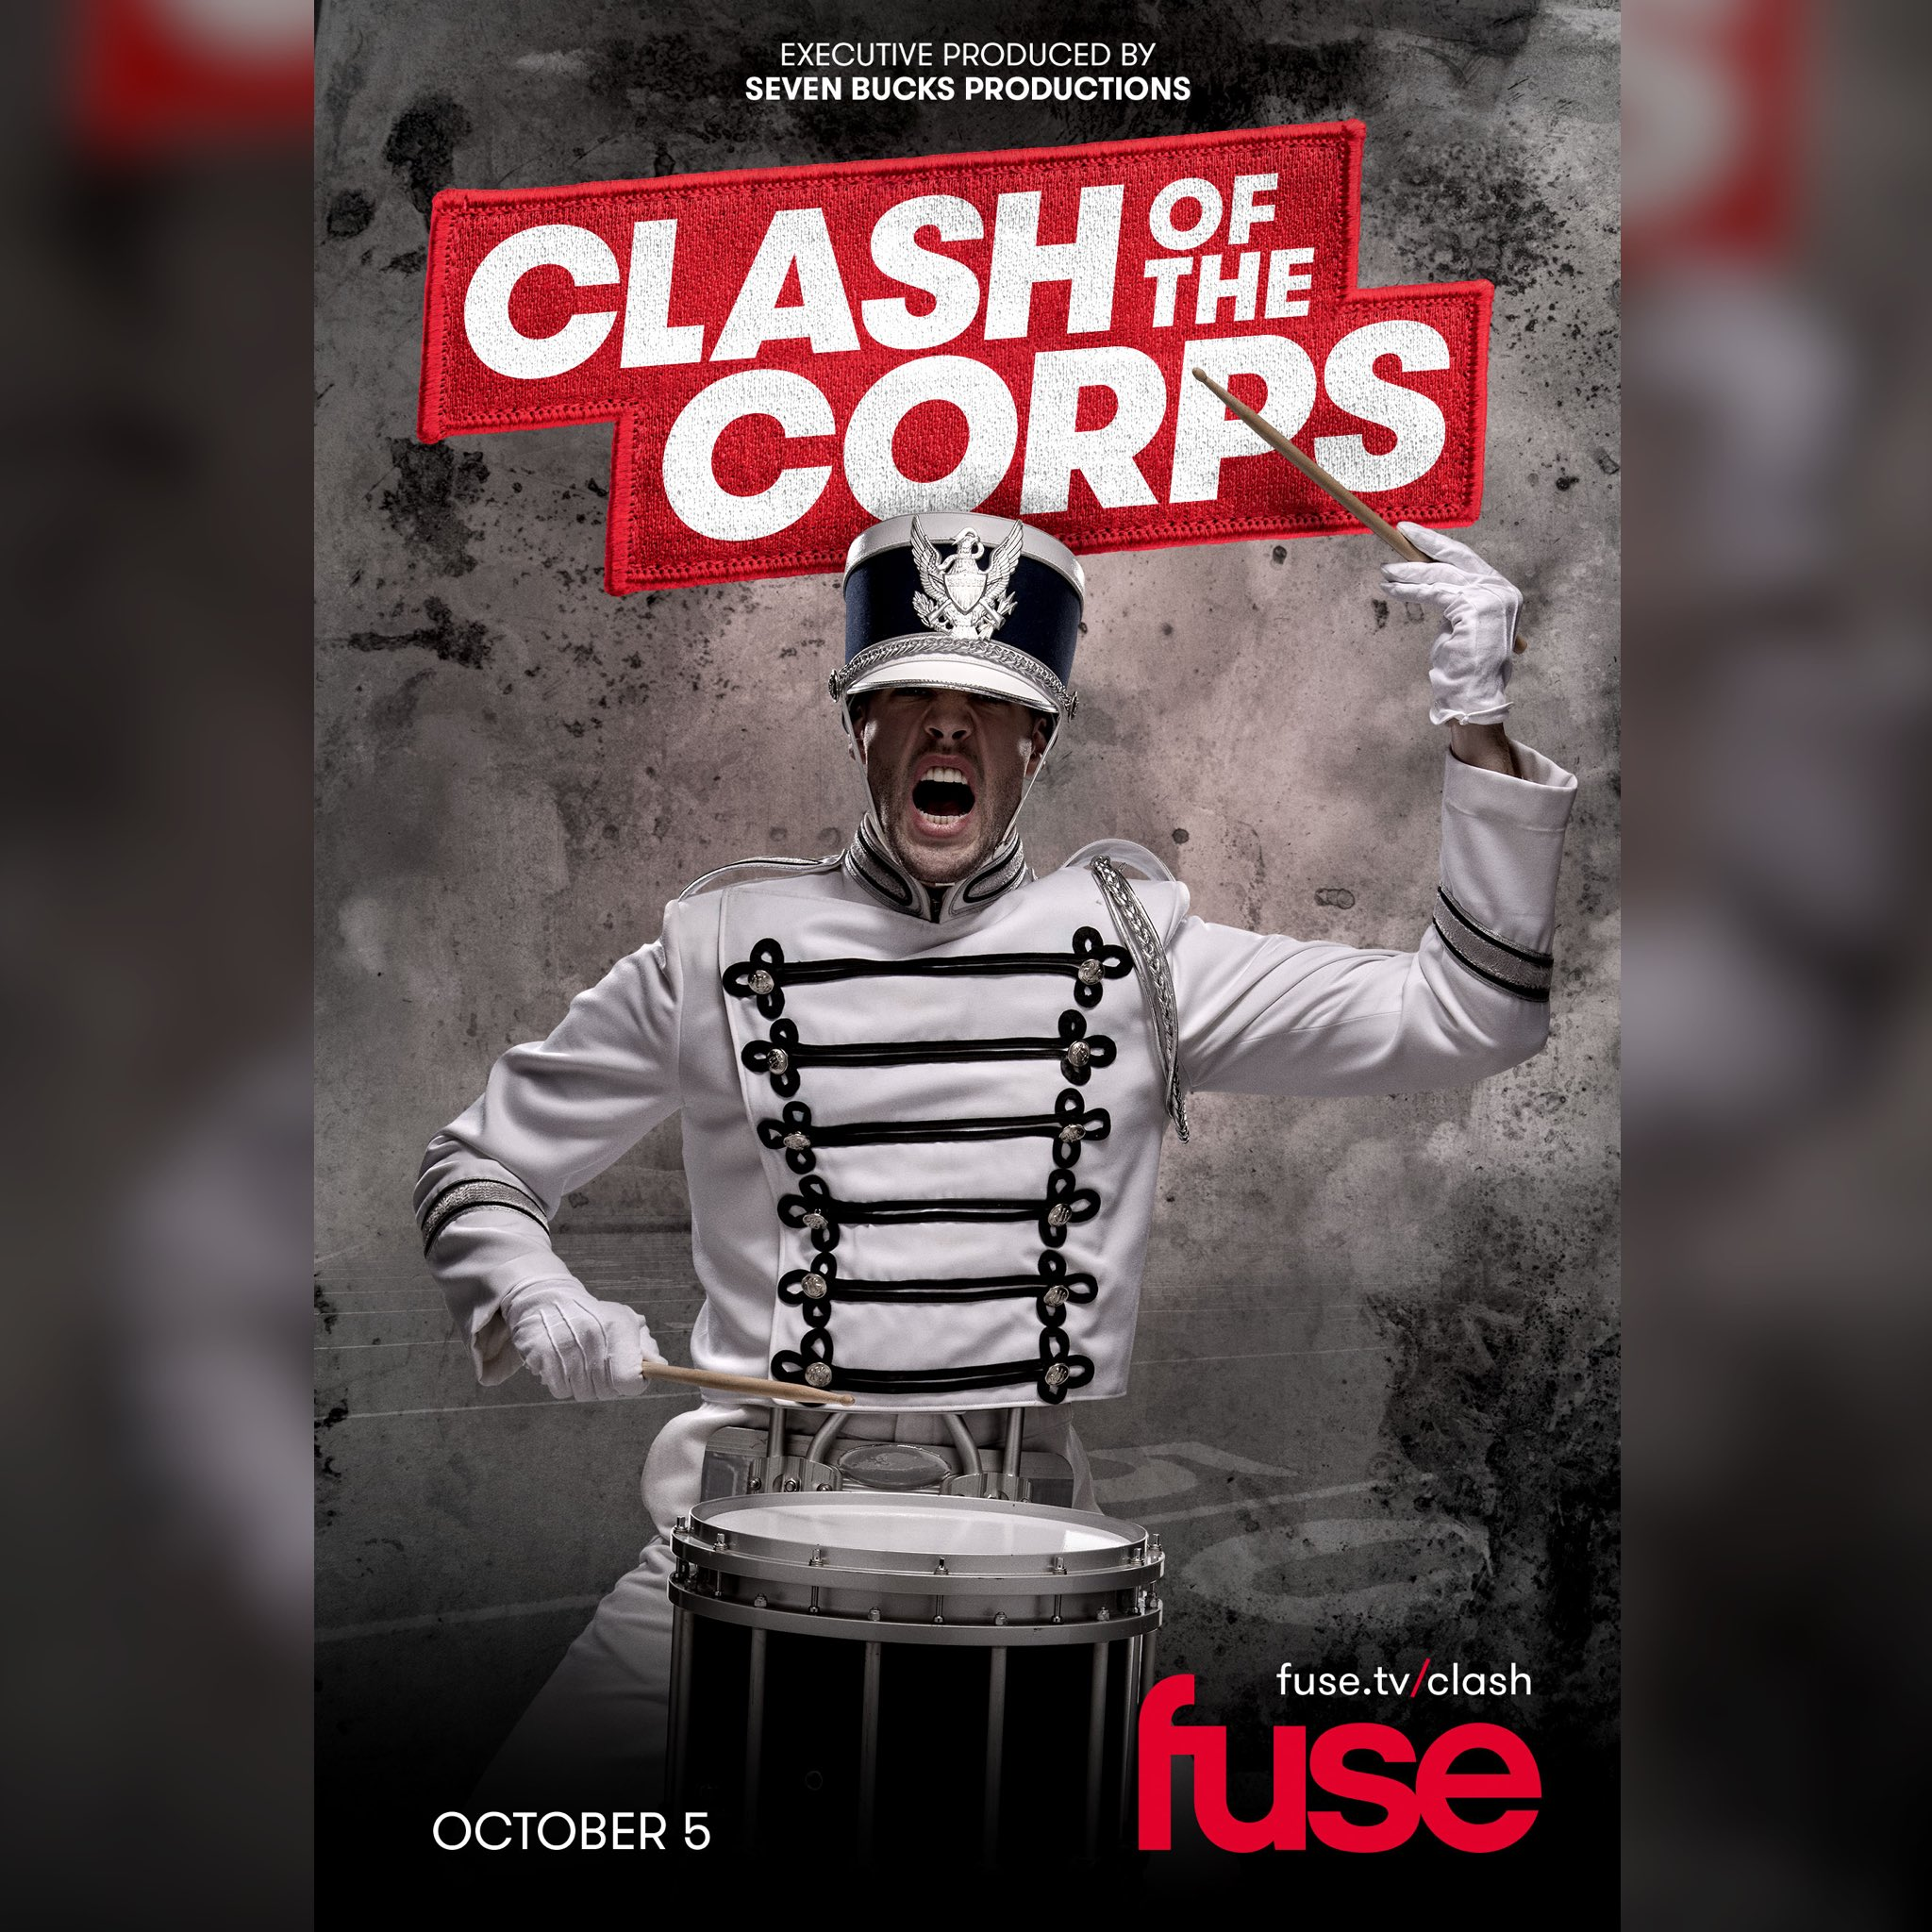 Our @SevenBucksProd's is bringing you inside the drum corps world! #ClashOfTheCorps on @fuse https://t.co/2PGvyAkRy1 https://t.co/gbrA58mrq5